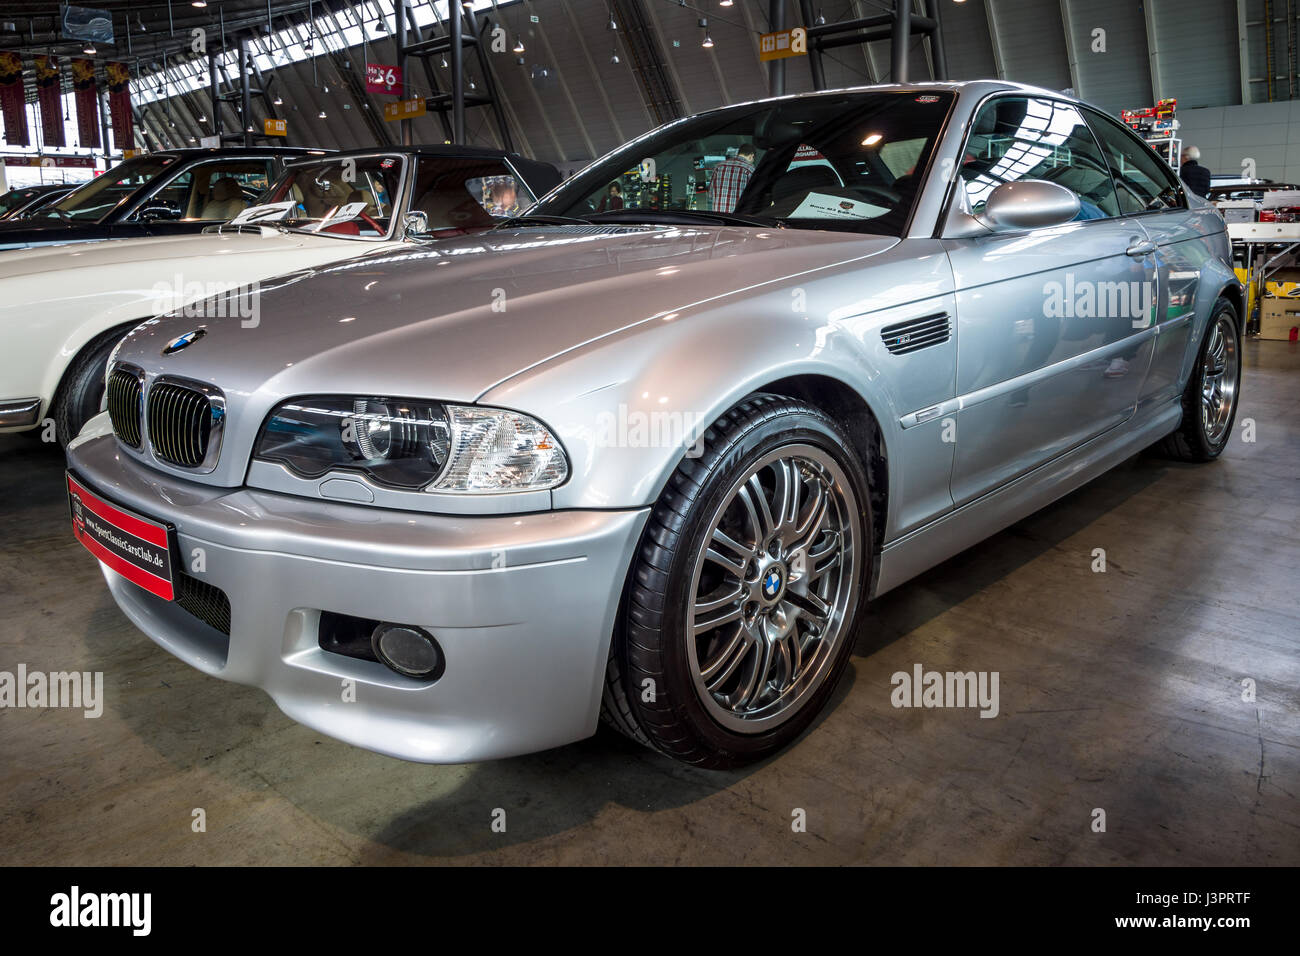 STUTTGART, GERMANY - MARCH 03, 2017: Entry-level luxury car BMW M3 (E46). Europe's greatest classic car exhibition - Stock Image